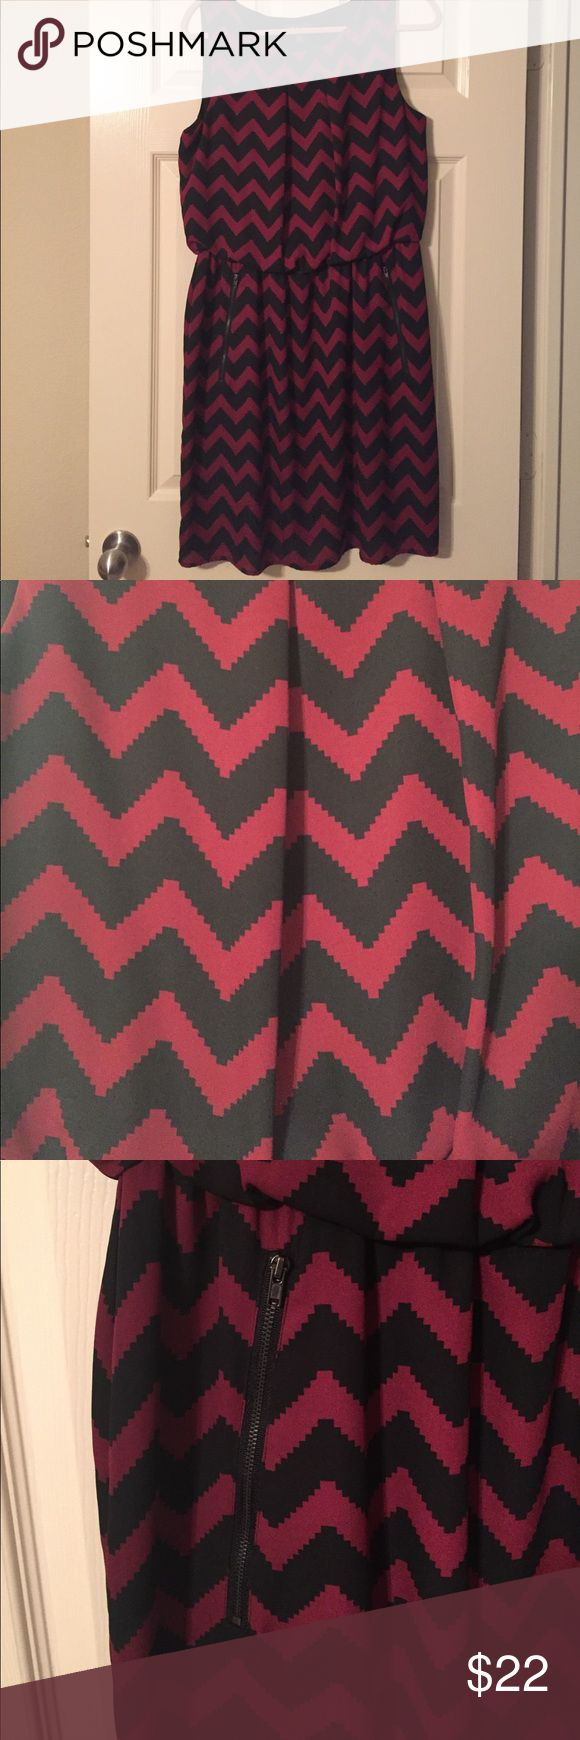 Red and Black Chevron Print Dress with Pockets LAST CHANCE, going to Goodwill on Friday, July 14! All reasonable offers will be accepted. New without tags's red, almost maroon, and black chevron print dress with cinched waist and zipper front pocket. Size 16! Extremely cute on but unfortunately was too big and I had already removed the tags. Great for work or date night. The skirt is lined. Non-smoking home. Dresses Midi